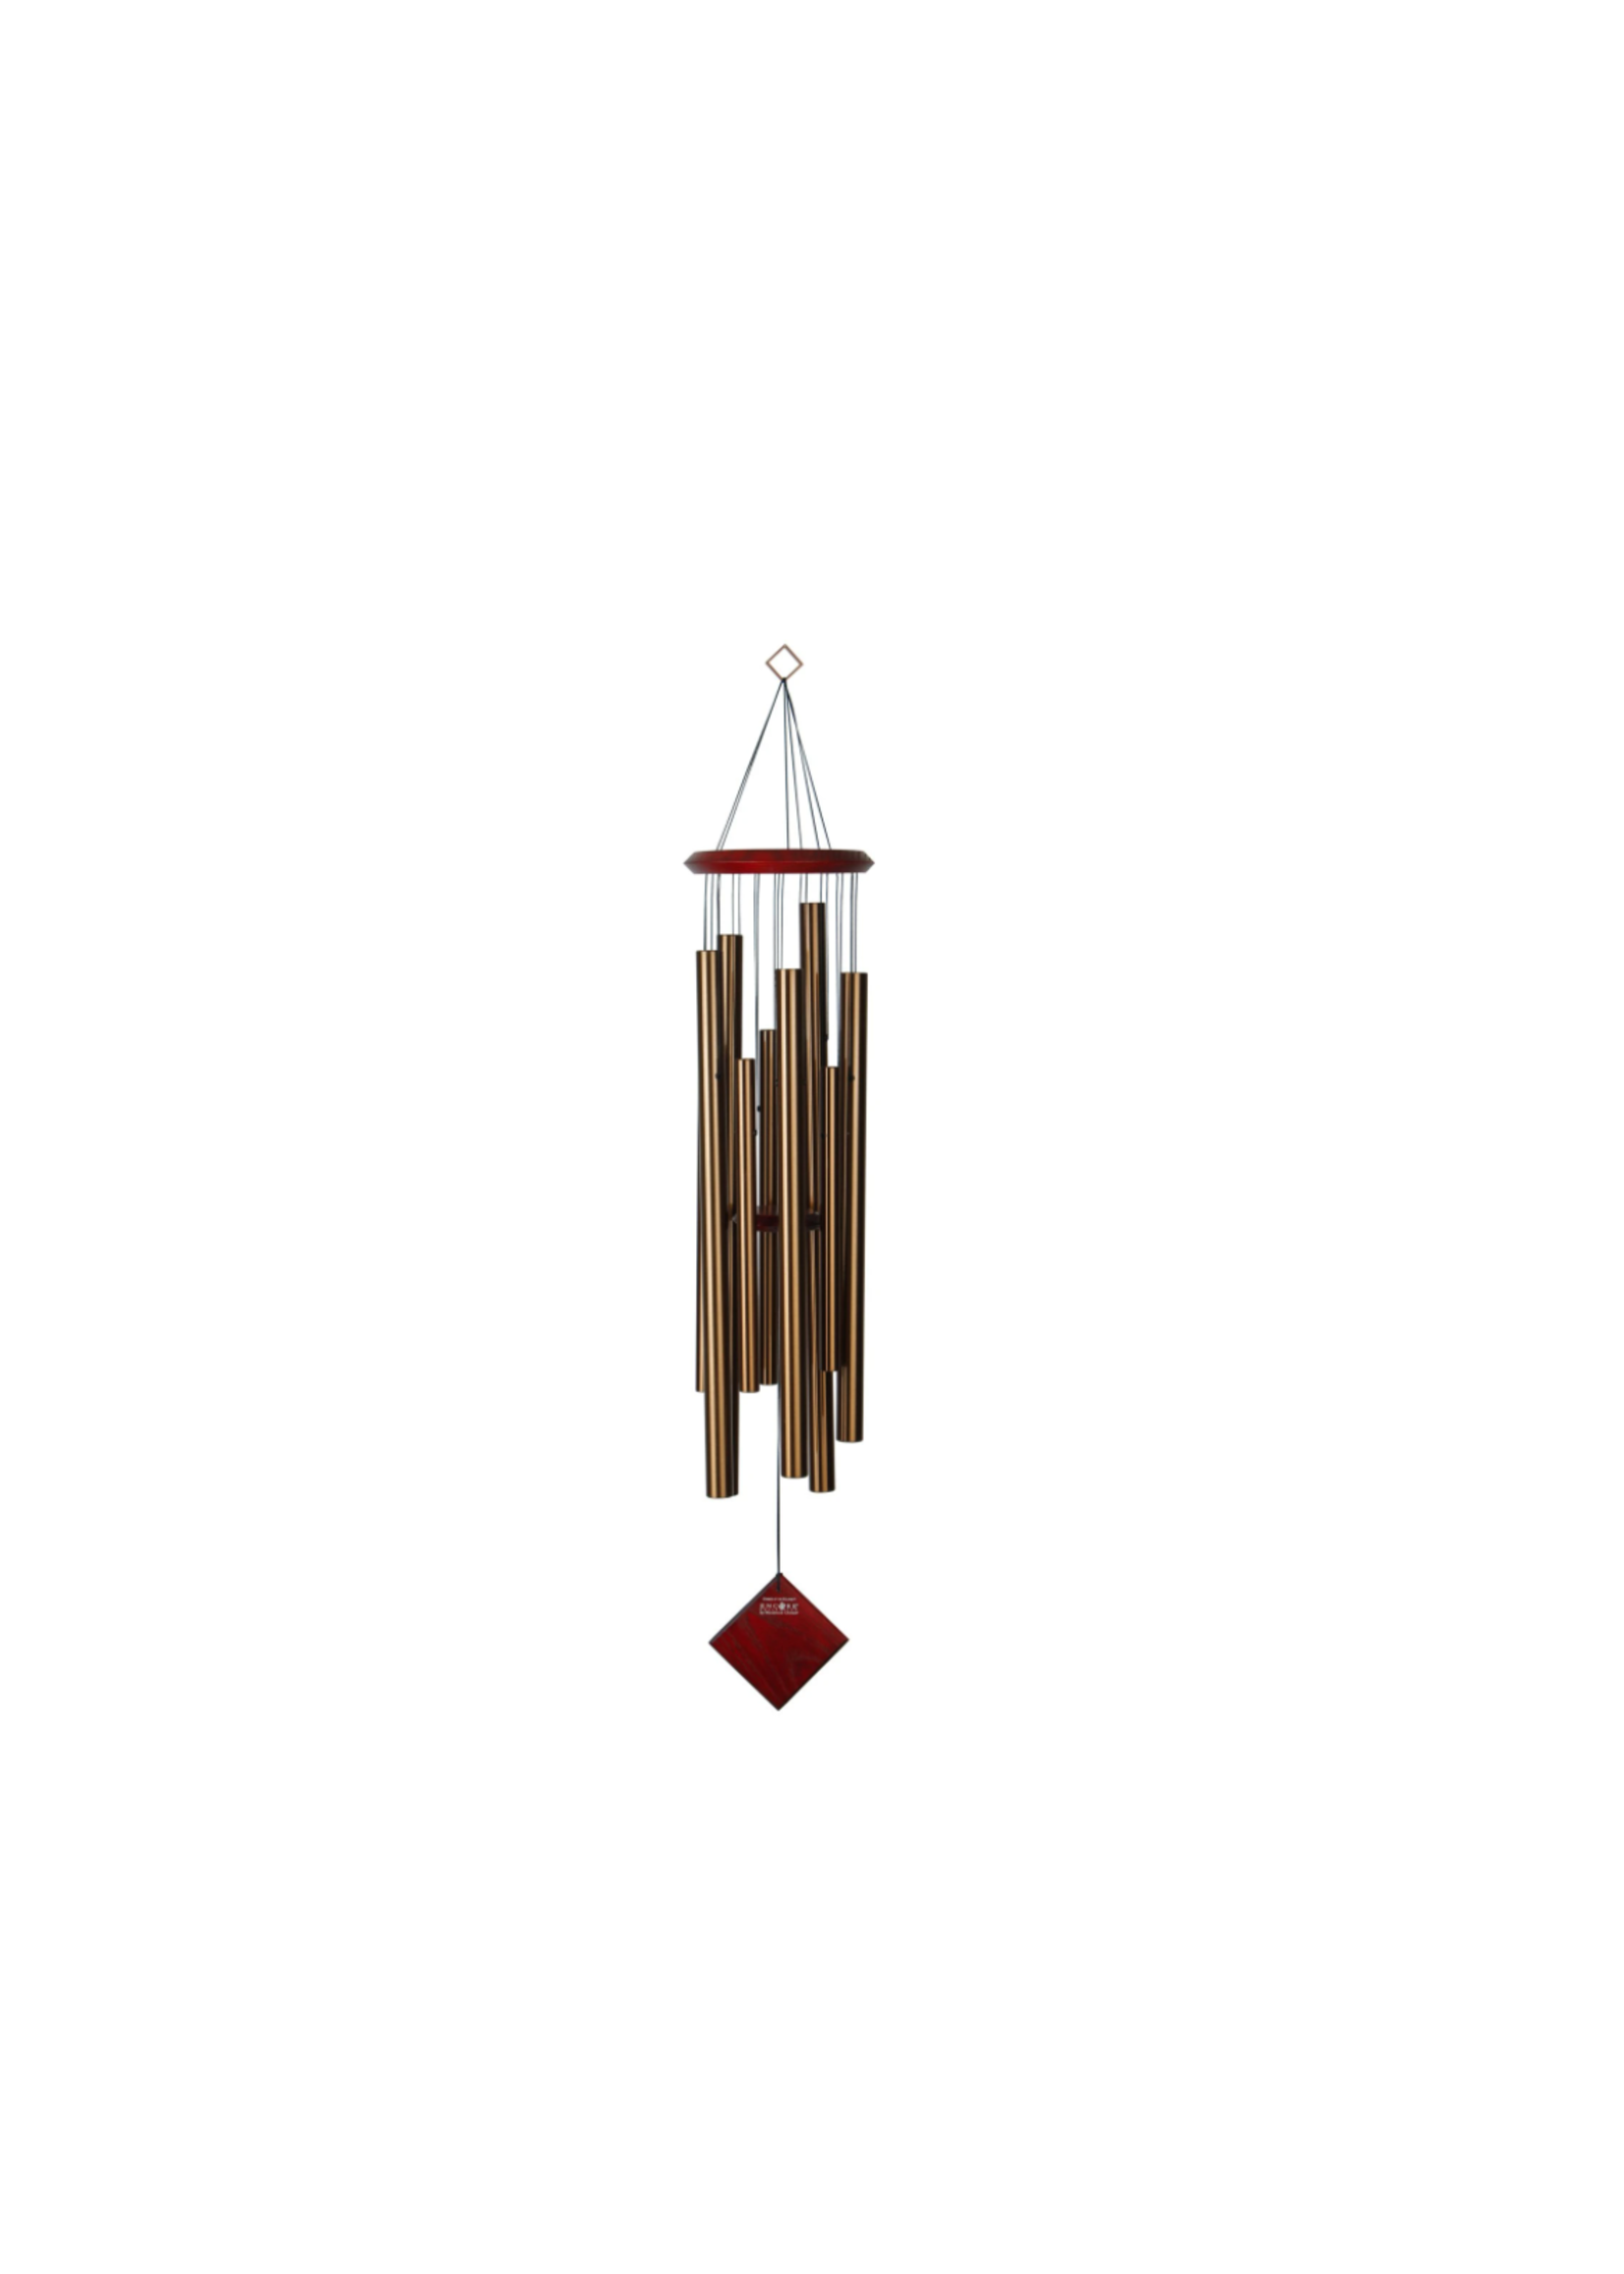 Chimes of the Eclipse